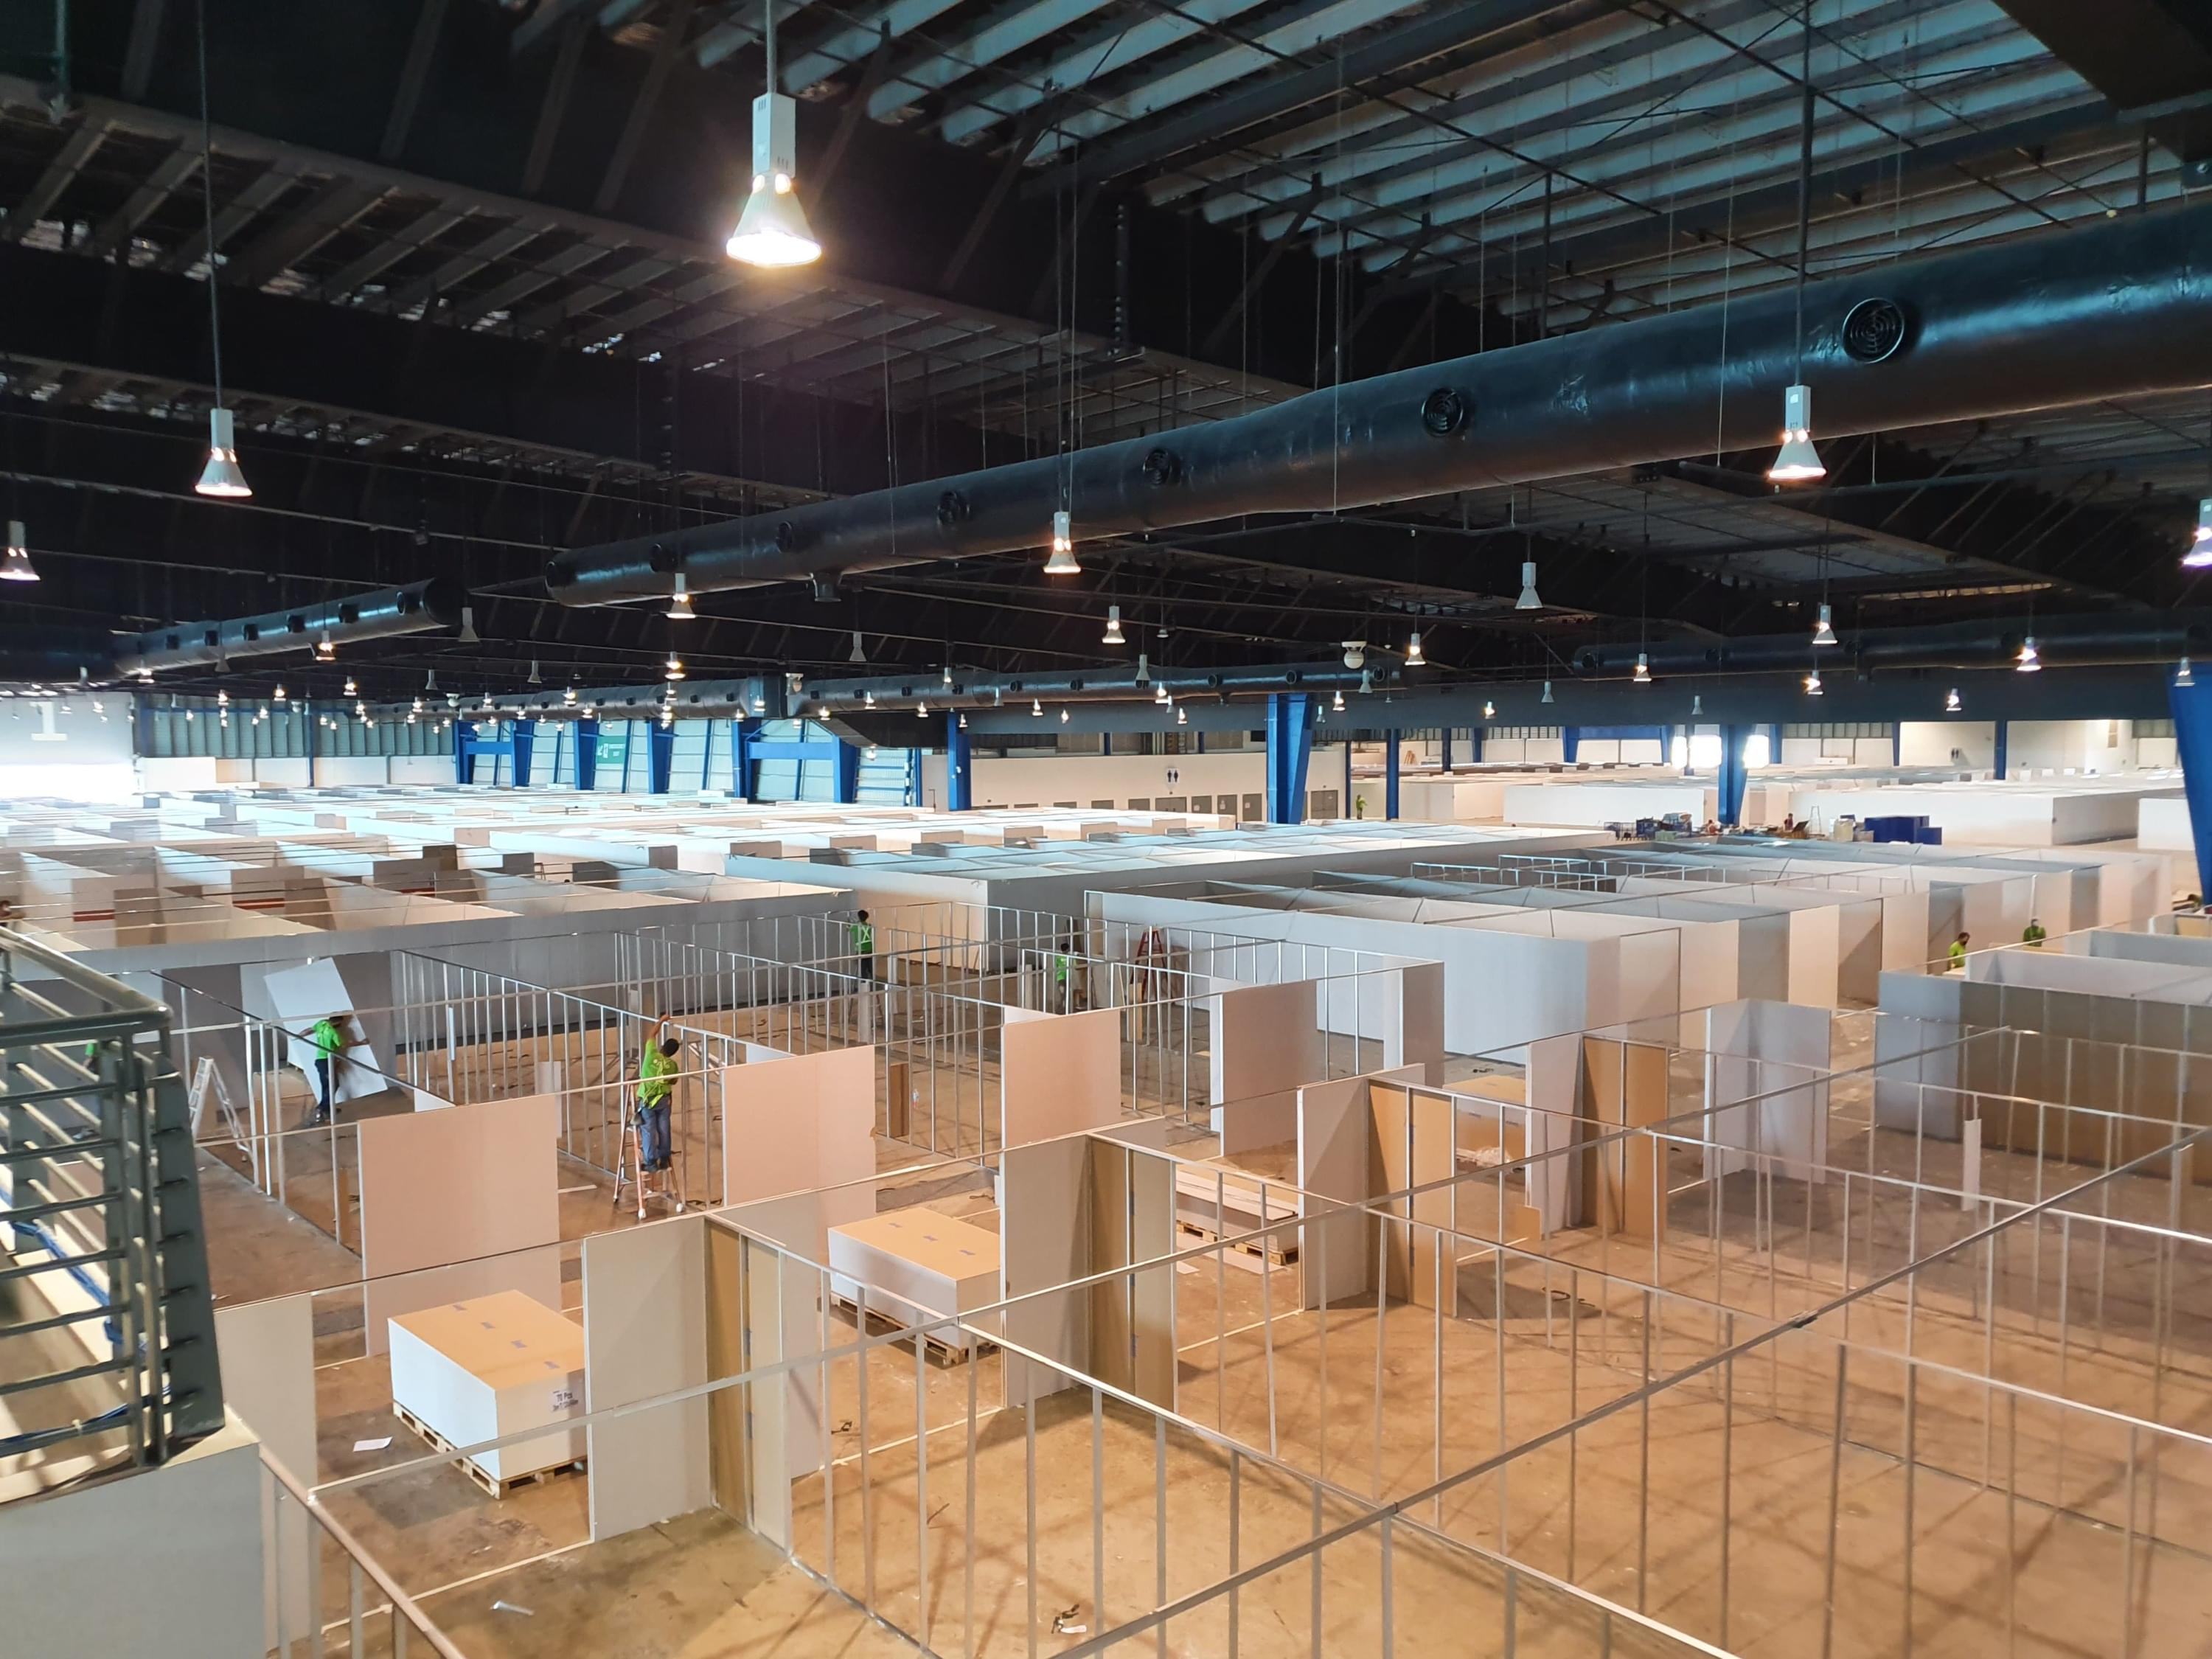 Coronavirus isolation facility under construction in Singapore